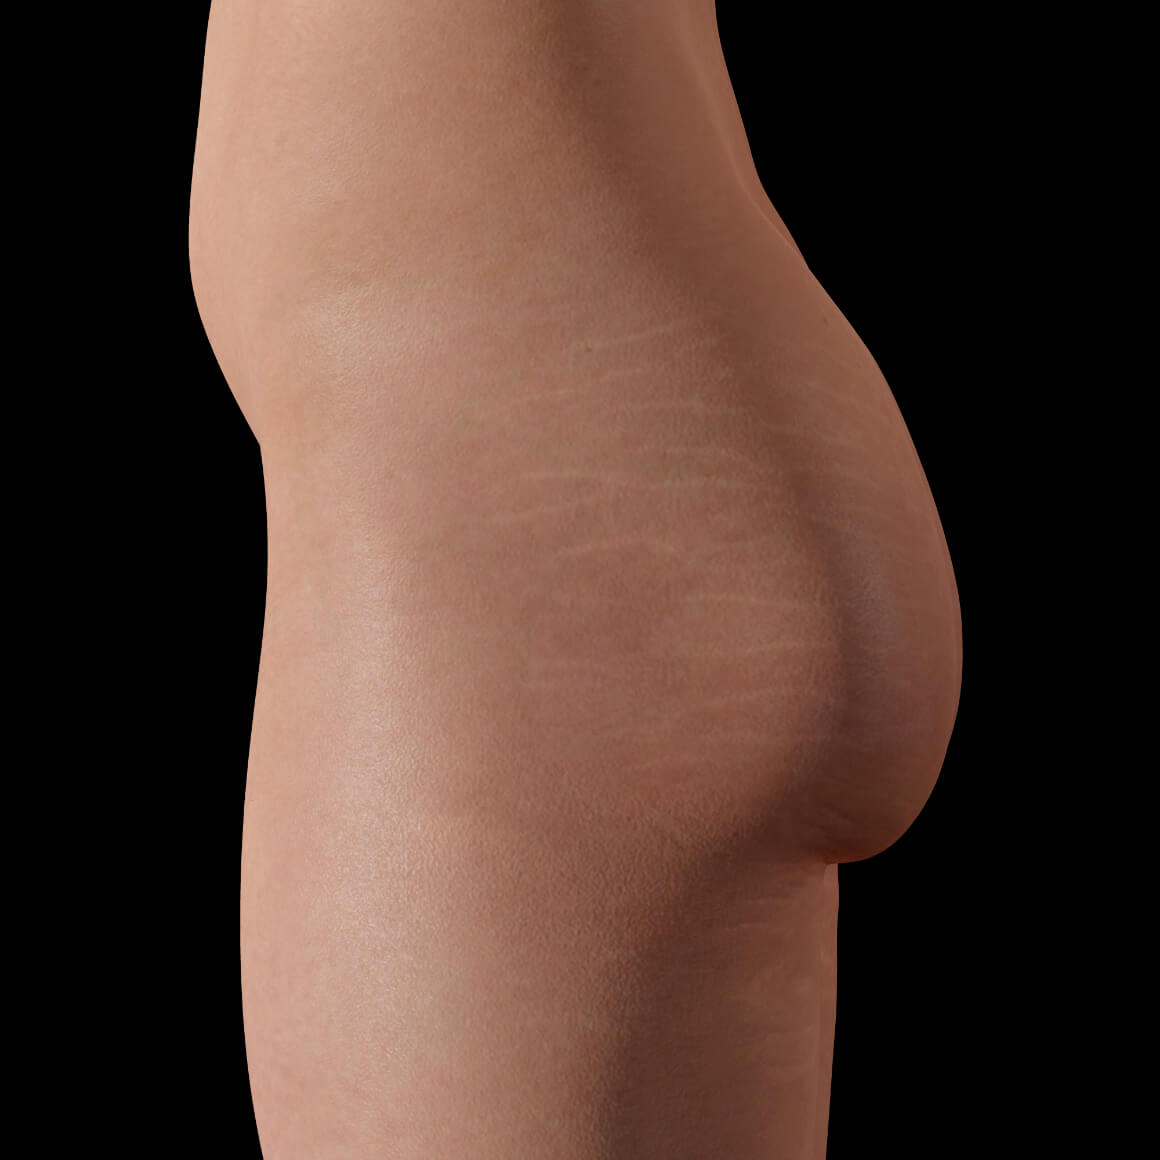 Female patient from Clinique Chloé positioned sideways after PRP treatments for stretch mark reduction